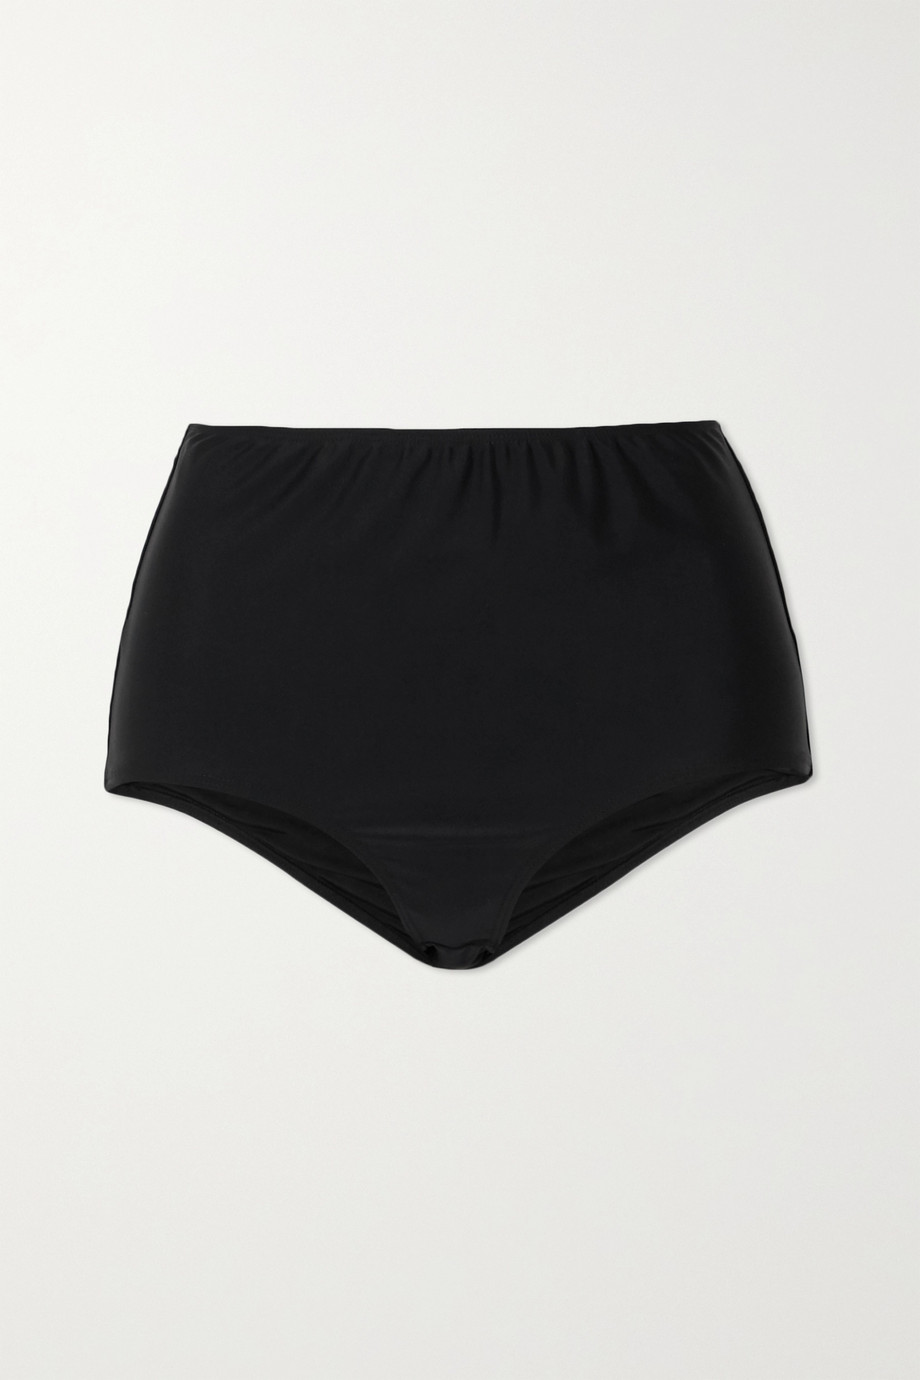 COVER + NET SUSTAIN stretch recycled bikini briefs